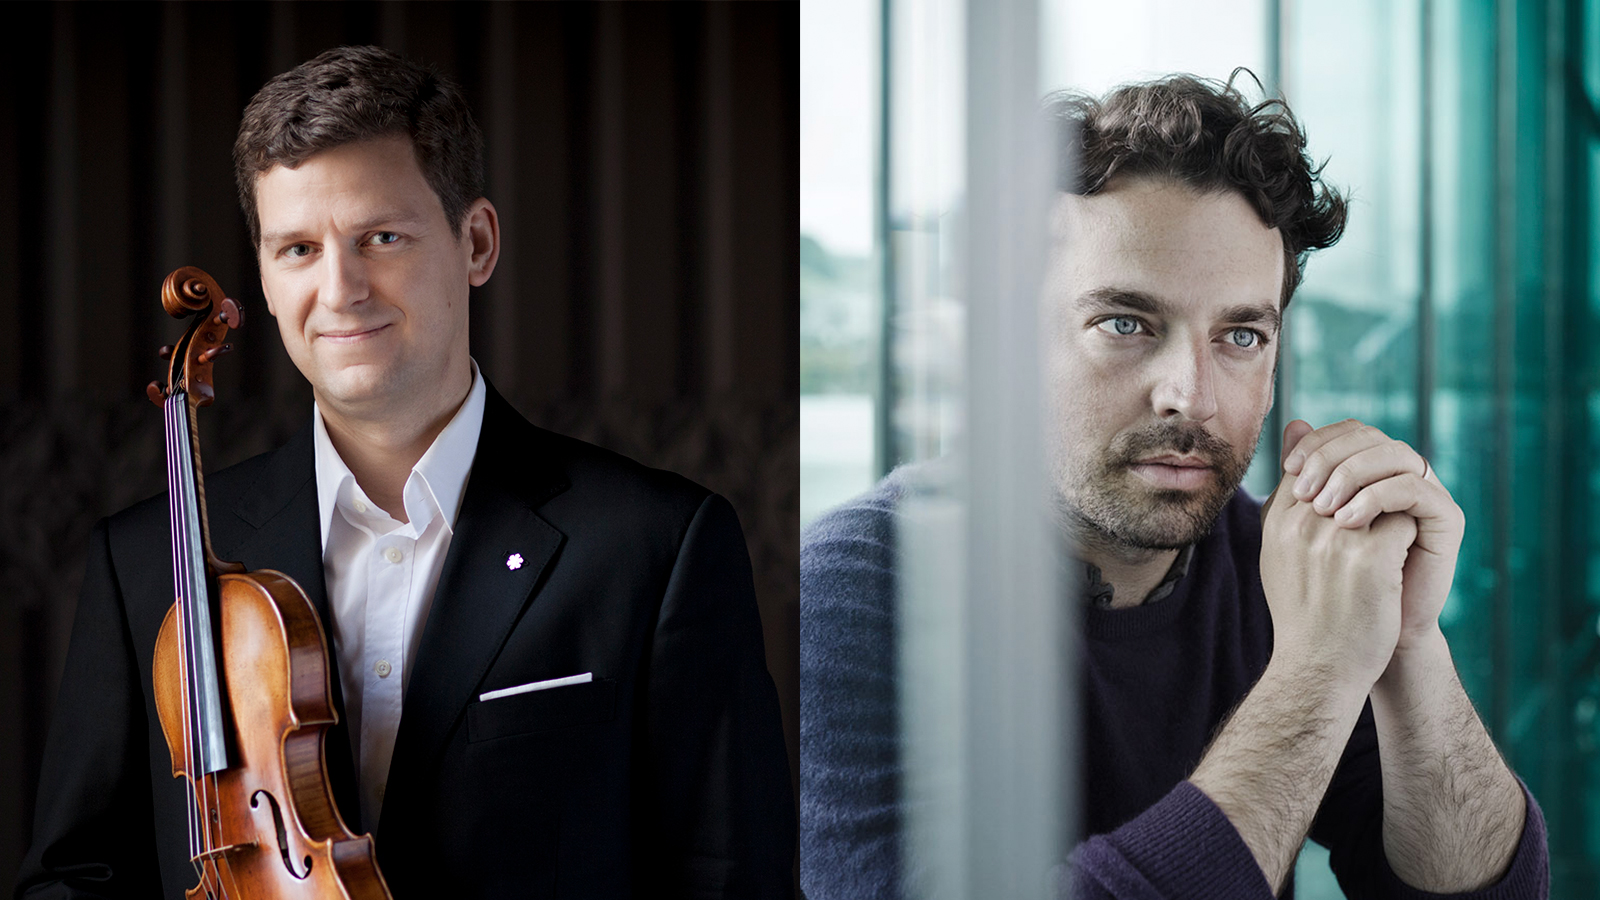 James Gaffigan and James Ehnes